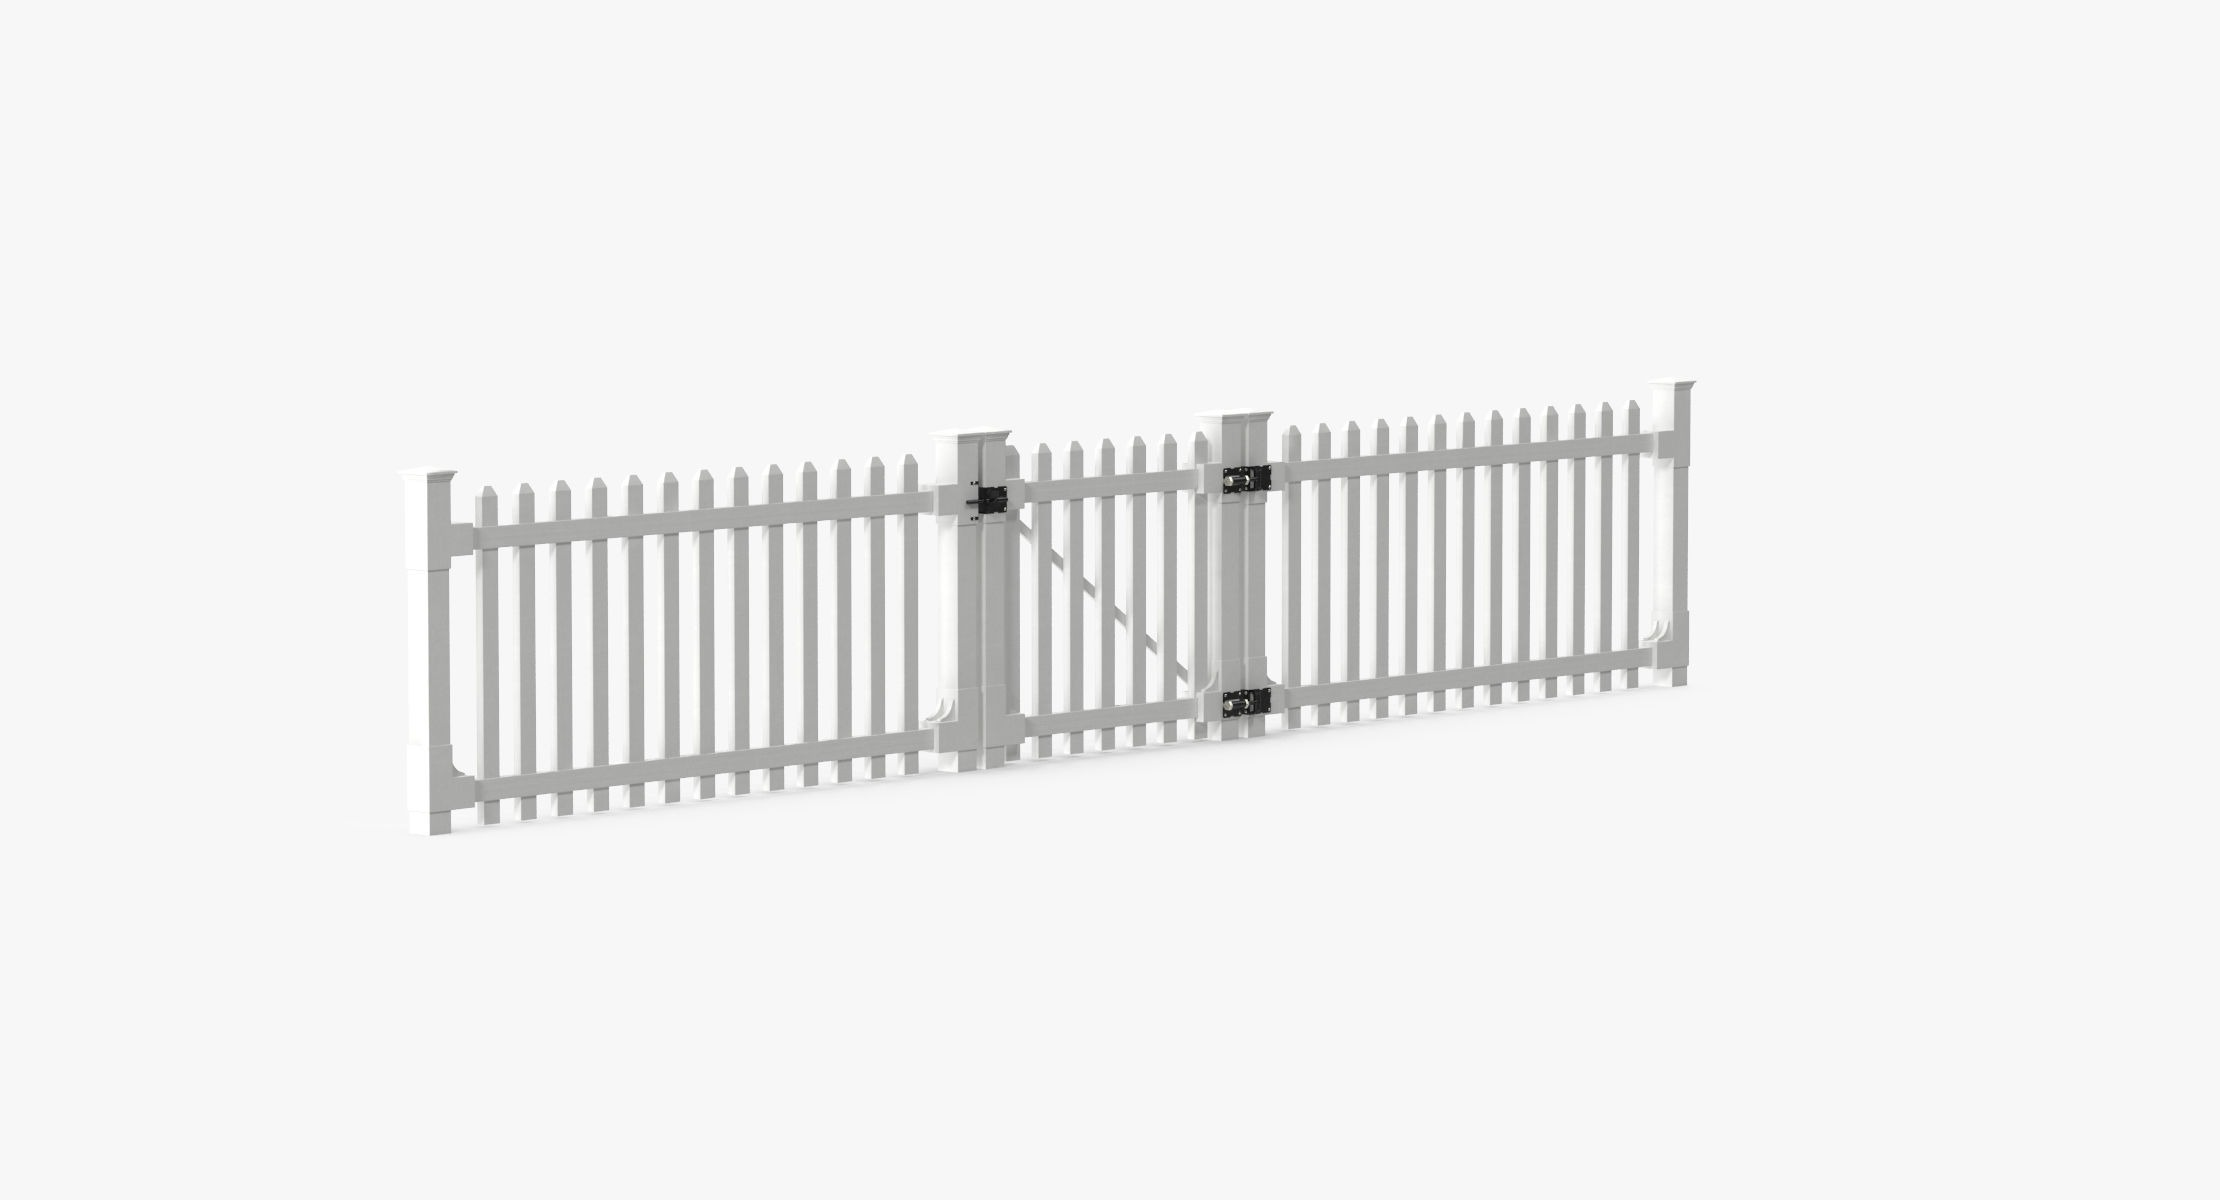 White Picket Fence Section and Gate - reel 1